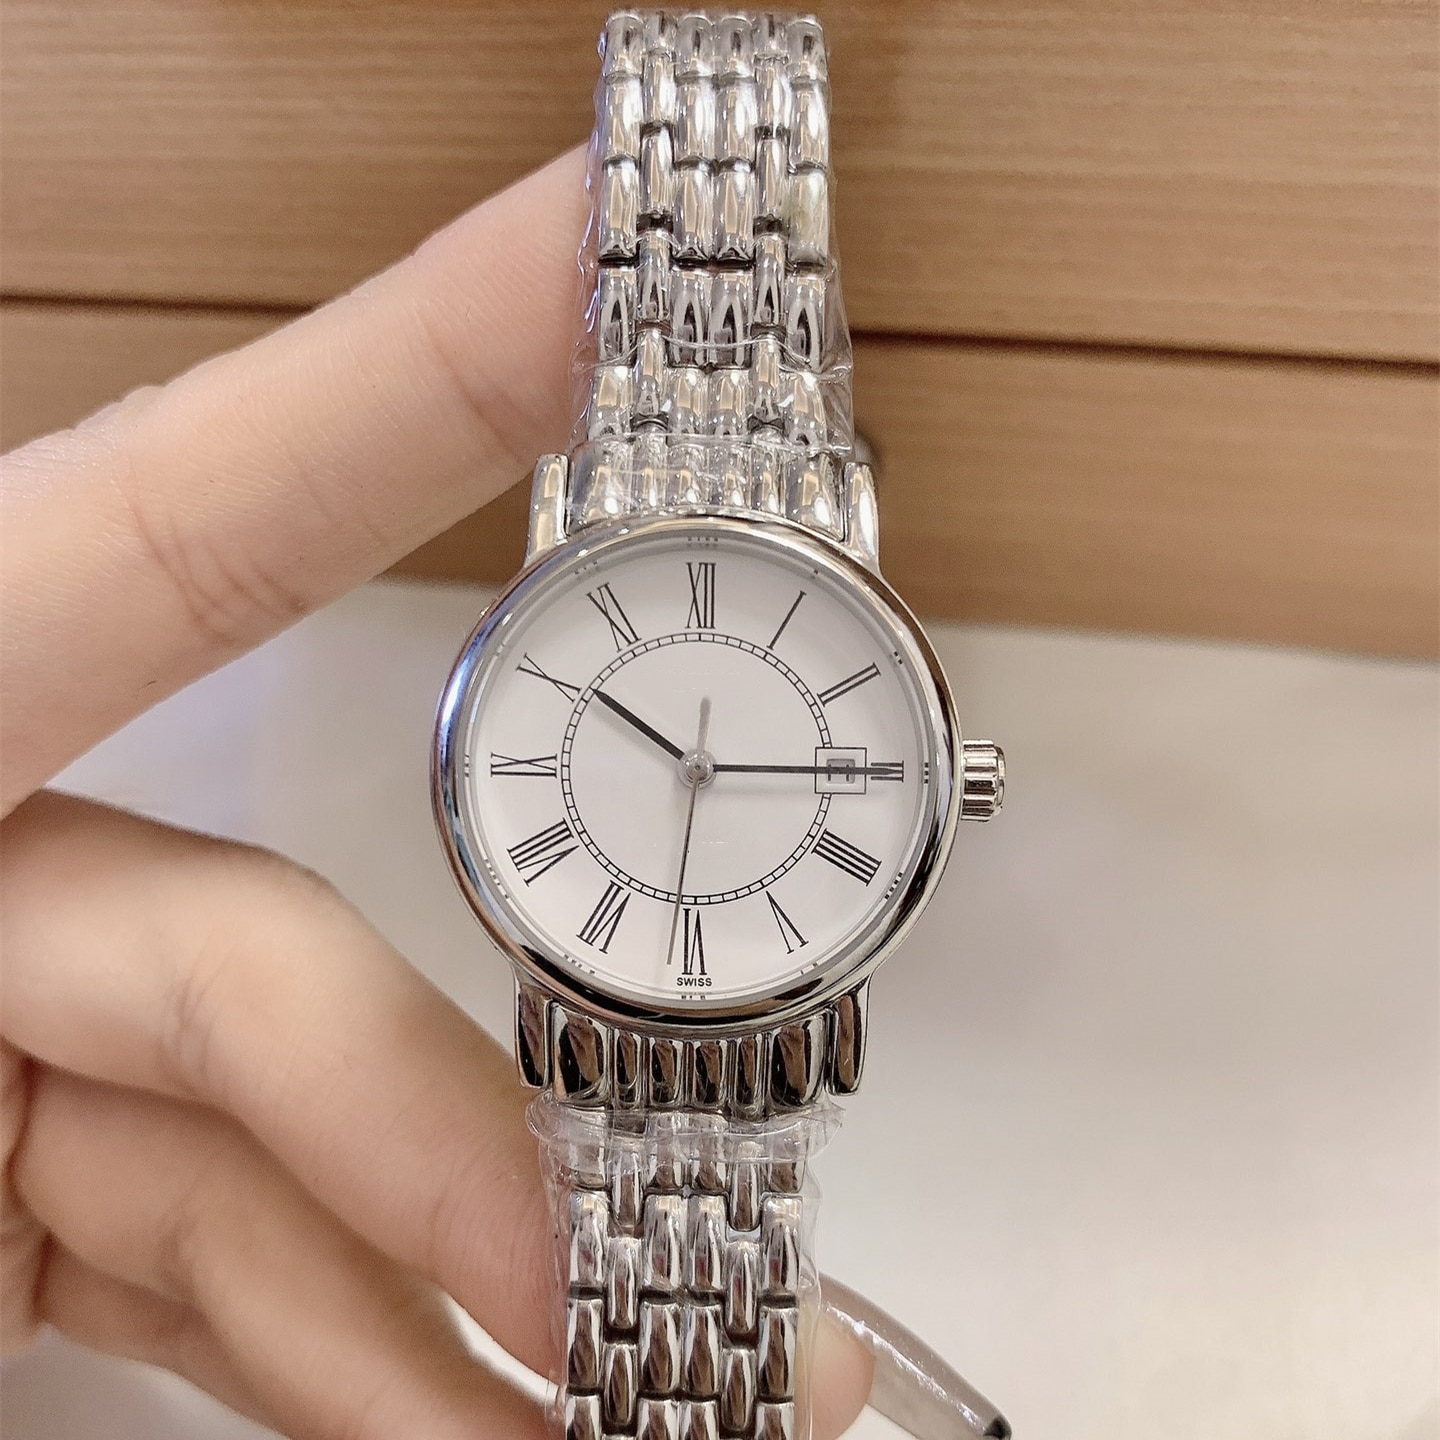 Ladies Stainless Steel Watch Watch Fully Automatic Mechanical Watch Exquisite Sapphire Stainless Steel Waterproof Watch enlarge